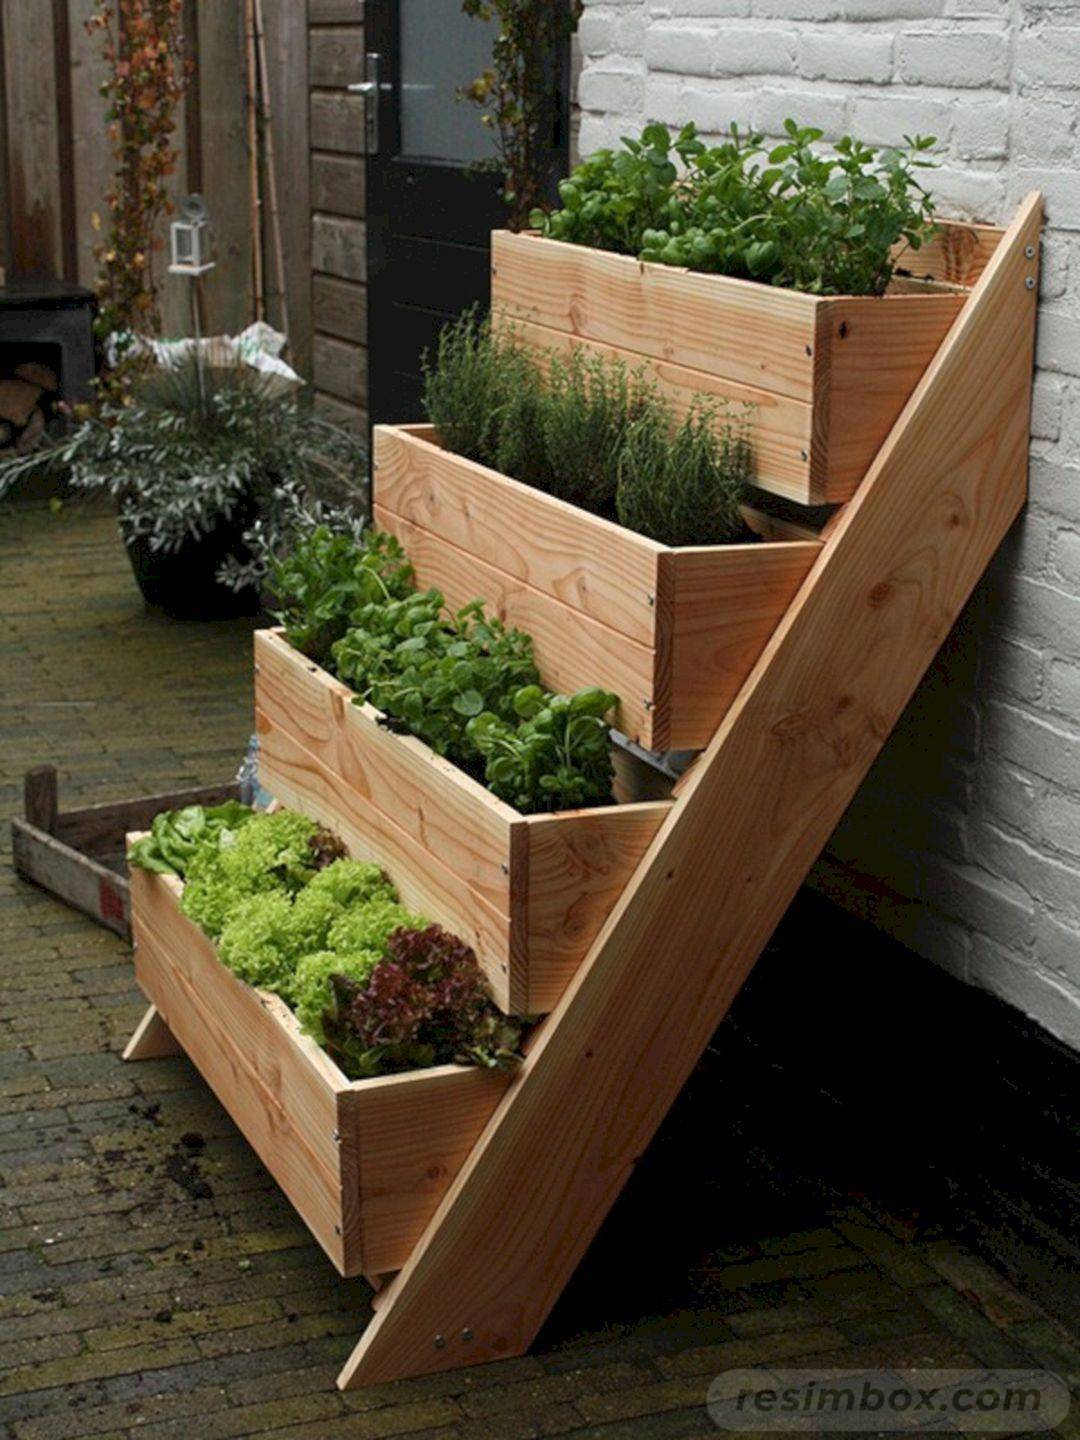 diy easy garden ideas-709387378785559166